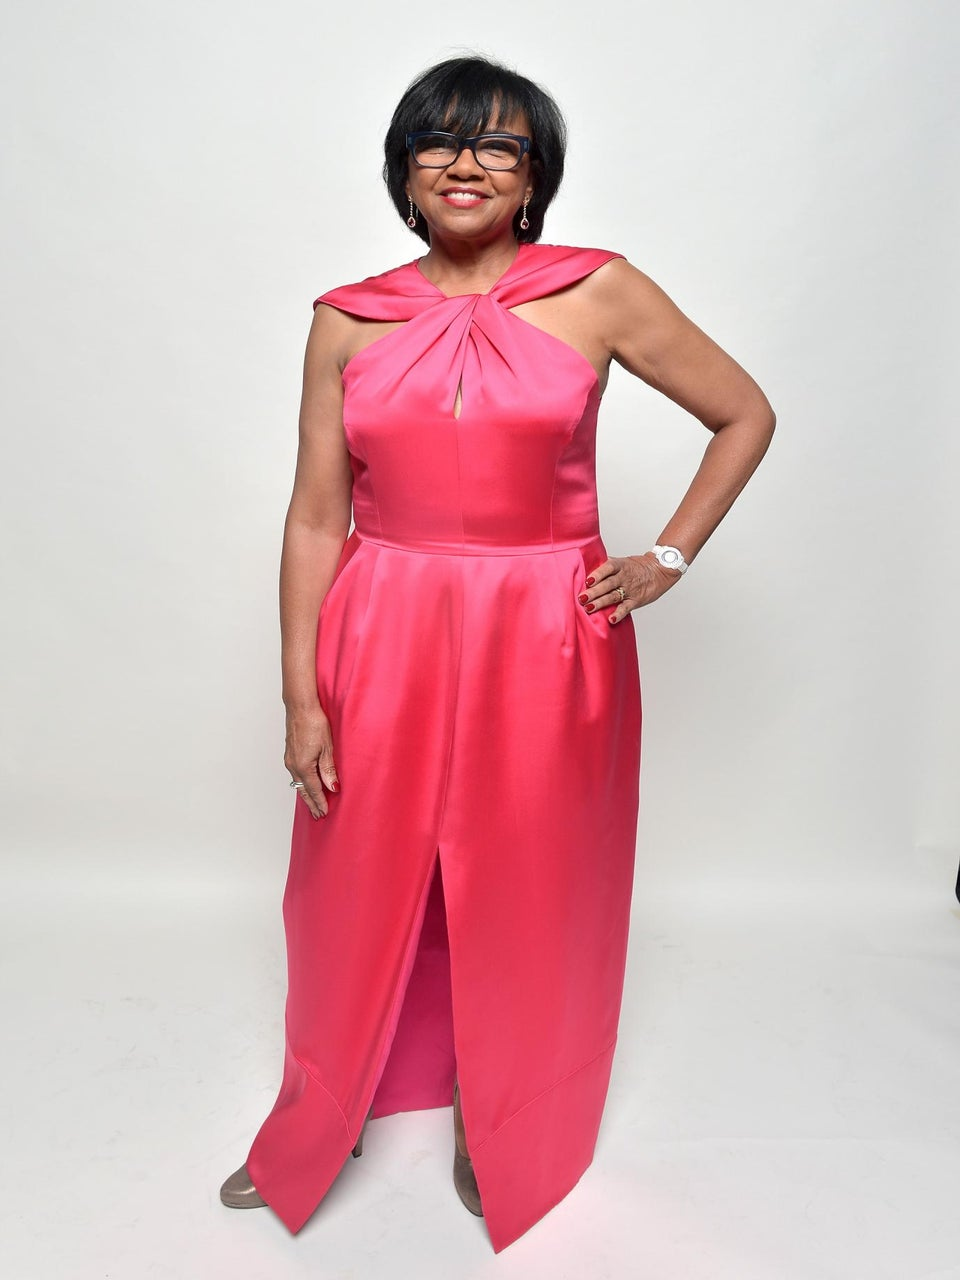 5 Things to Know About ESSENCE 'Black Women in Hollywood' Honoree, Cheryl Boone Isaacs